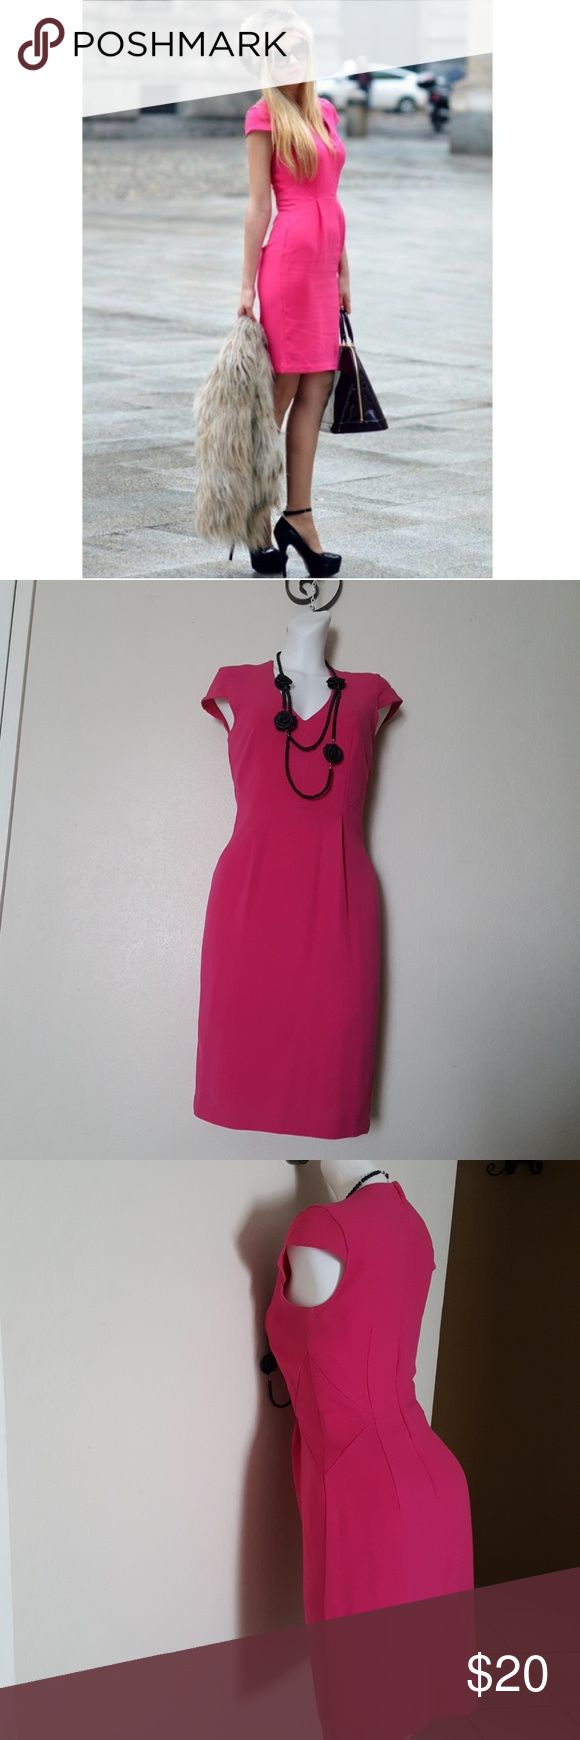 H&M Pink Dress. Super Pretty on pink! Lined US.4 Approximate size: Bust=33inch Width in the ribs=29inch Long=37inch  New with out tag.  I am size 4 and this dress is very tight on me so I will say that it is true size 4 petite, or good size 2. Available in color green too. ;) H&M Dresses Midi